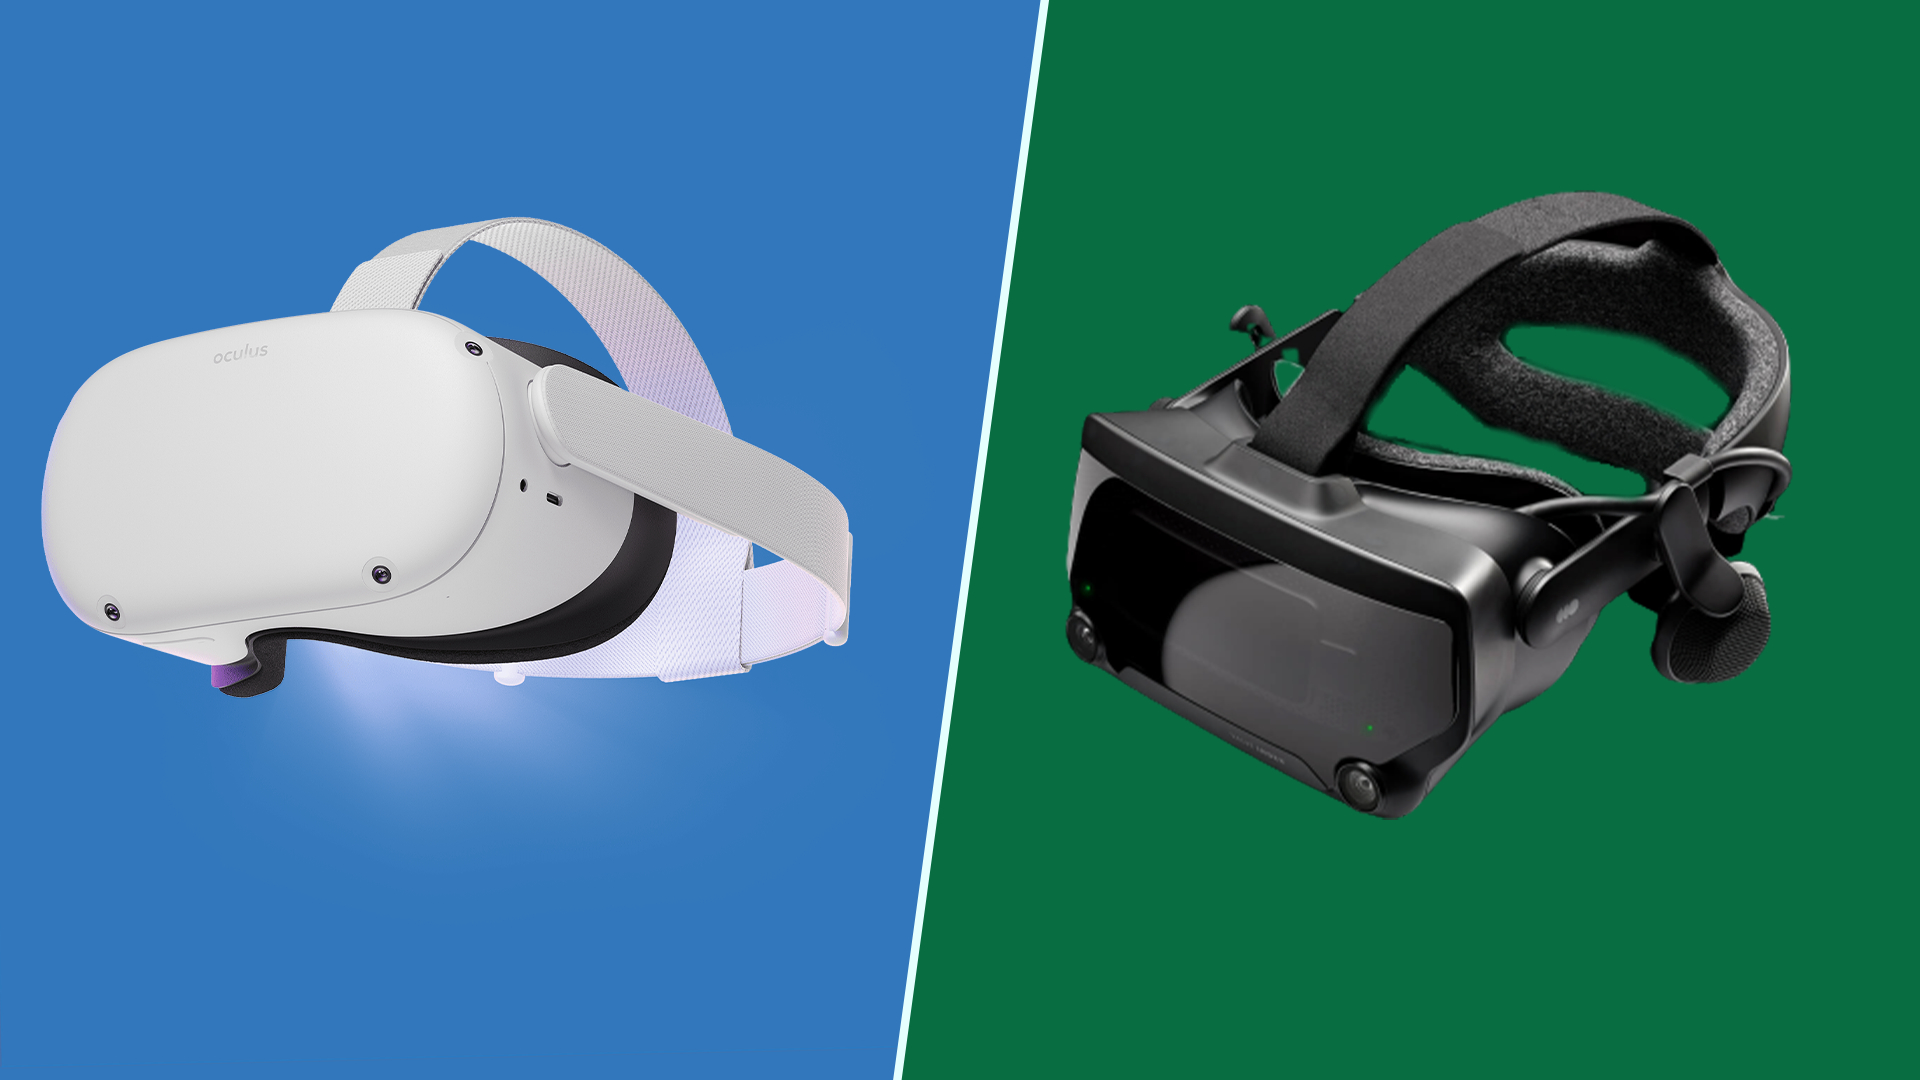 Oculus Quest 2 vs. Valve Index: Which VR headset should you buy?